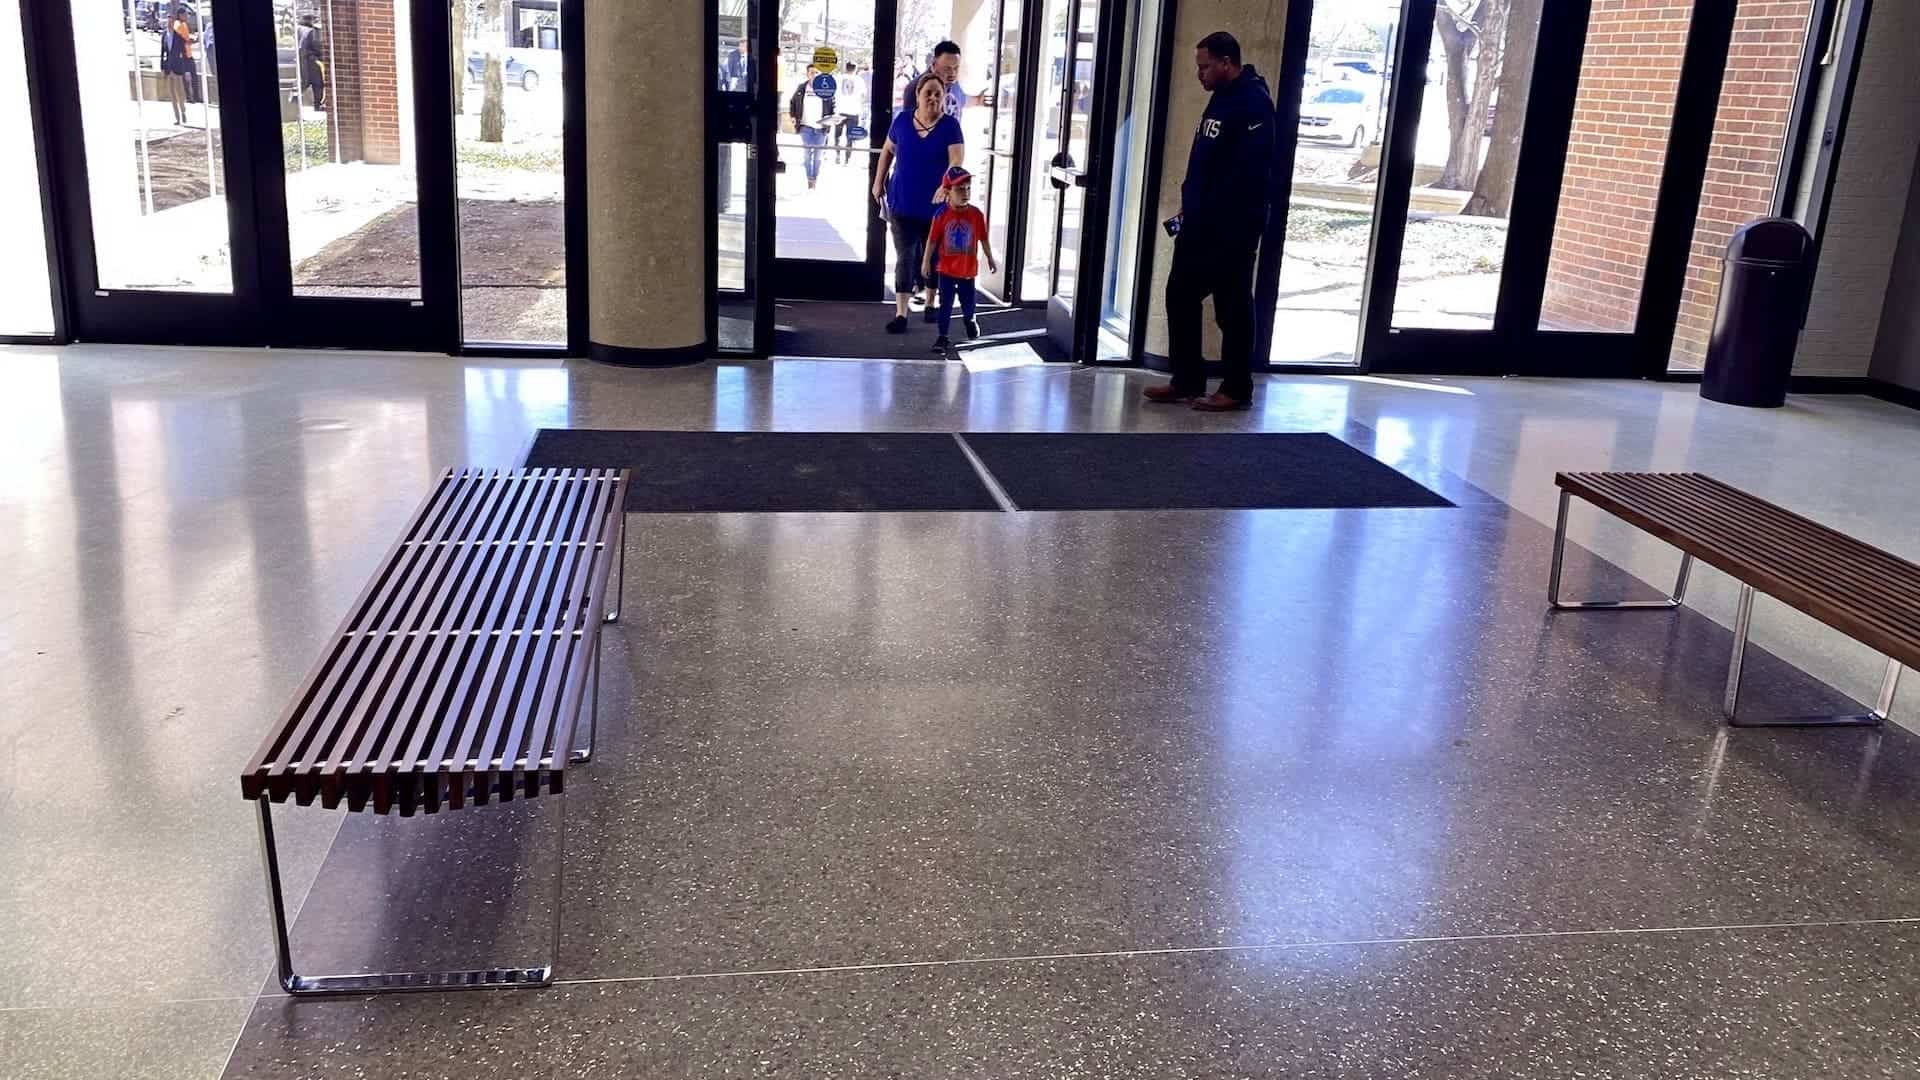 Durable and Appealing Terrazzo at the Dallas County North Building